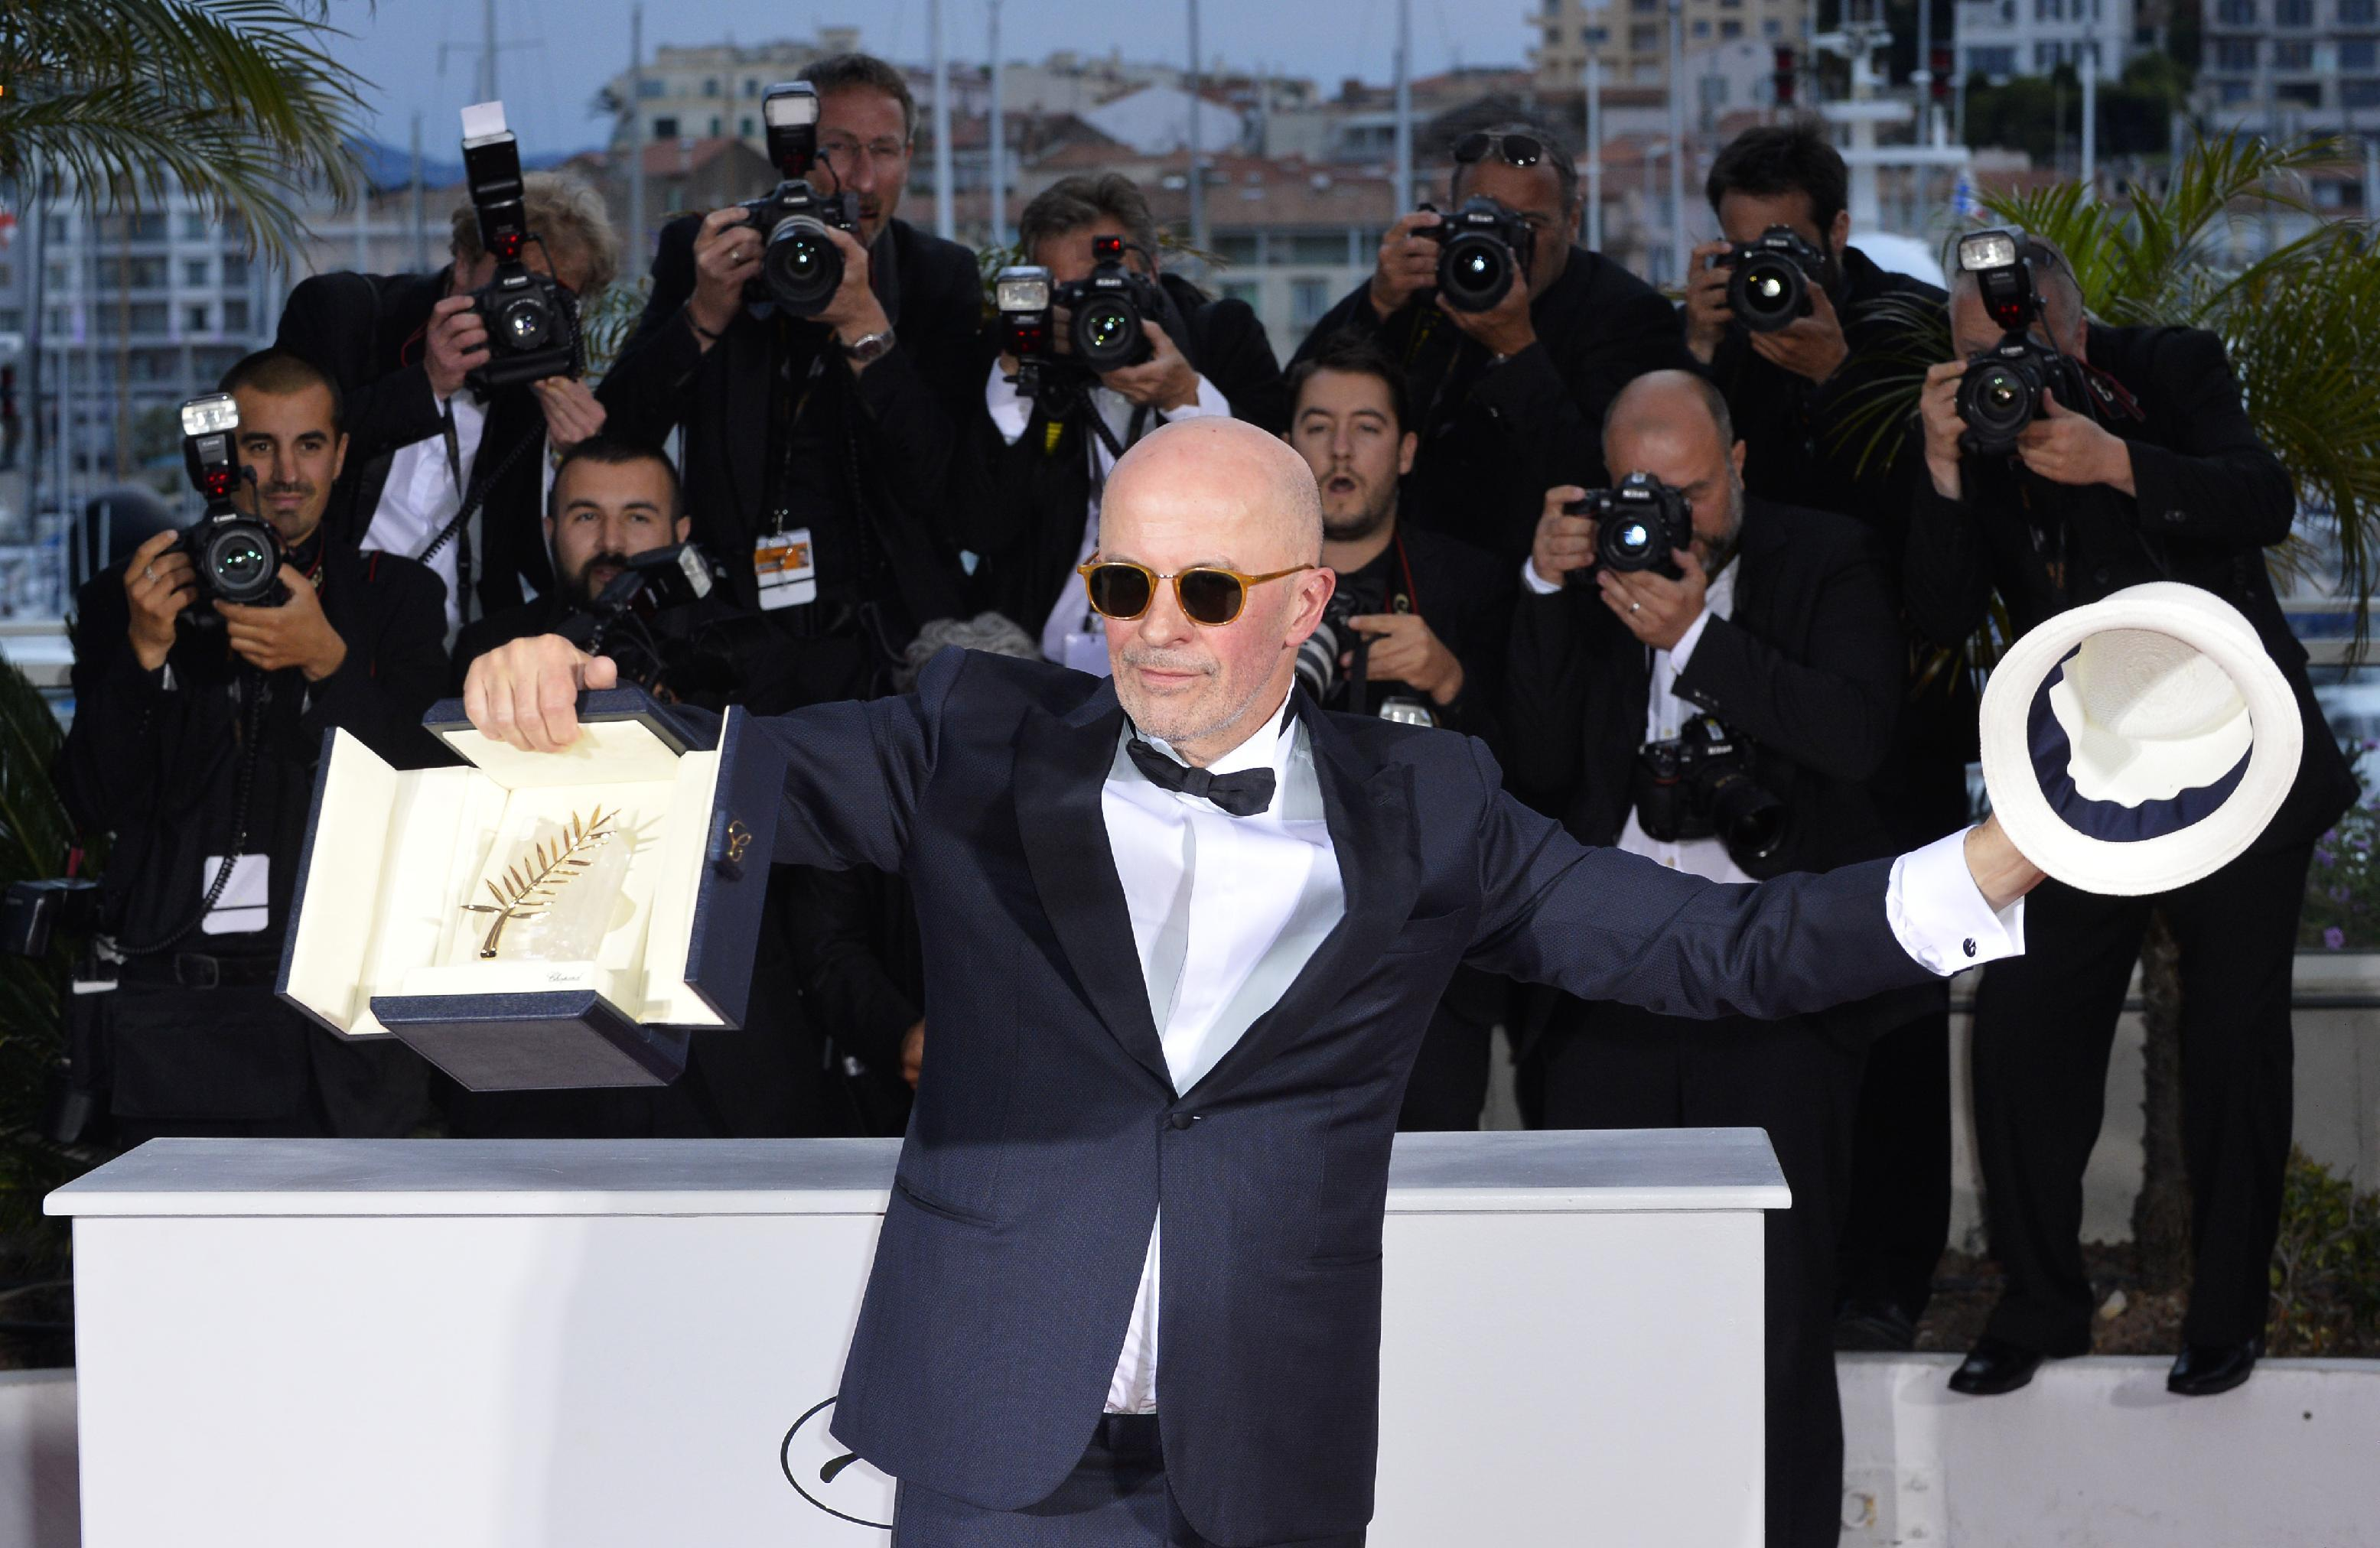 France touts Cannes prizes as vindication for film subsidies